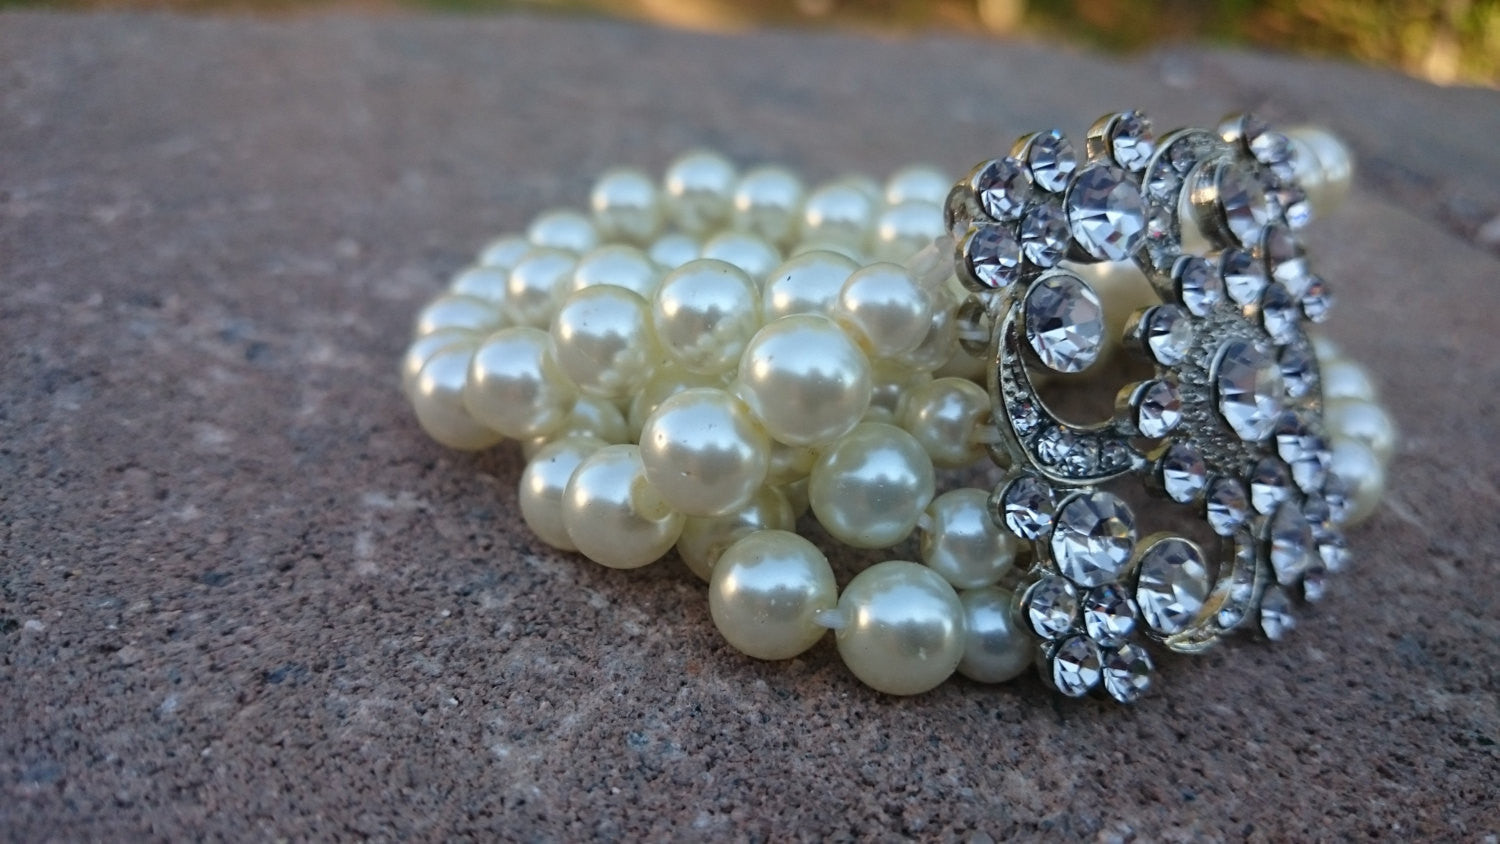 Art Deco Pearl Bridal Bracelet Vintage inspire bracelet Ivory Pearl Stretch Bracelet Can Be Custom Sized for Plus Size or Small Wrists